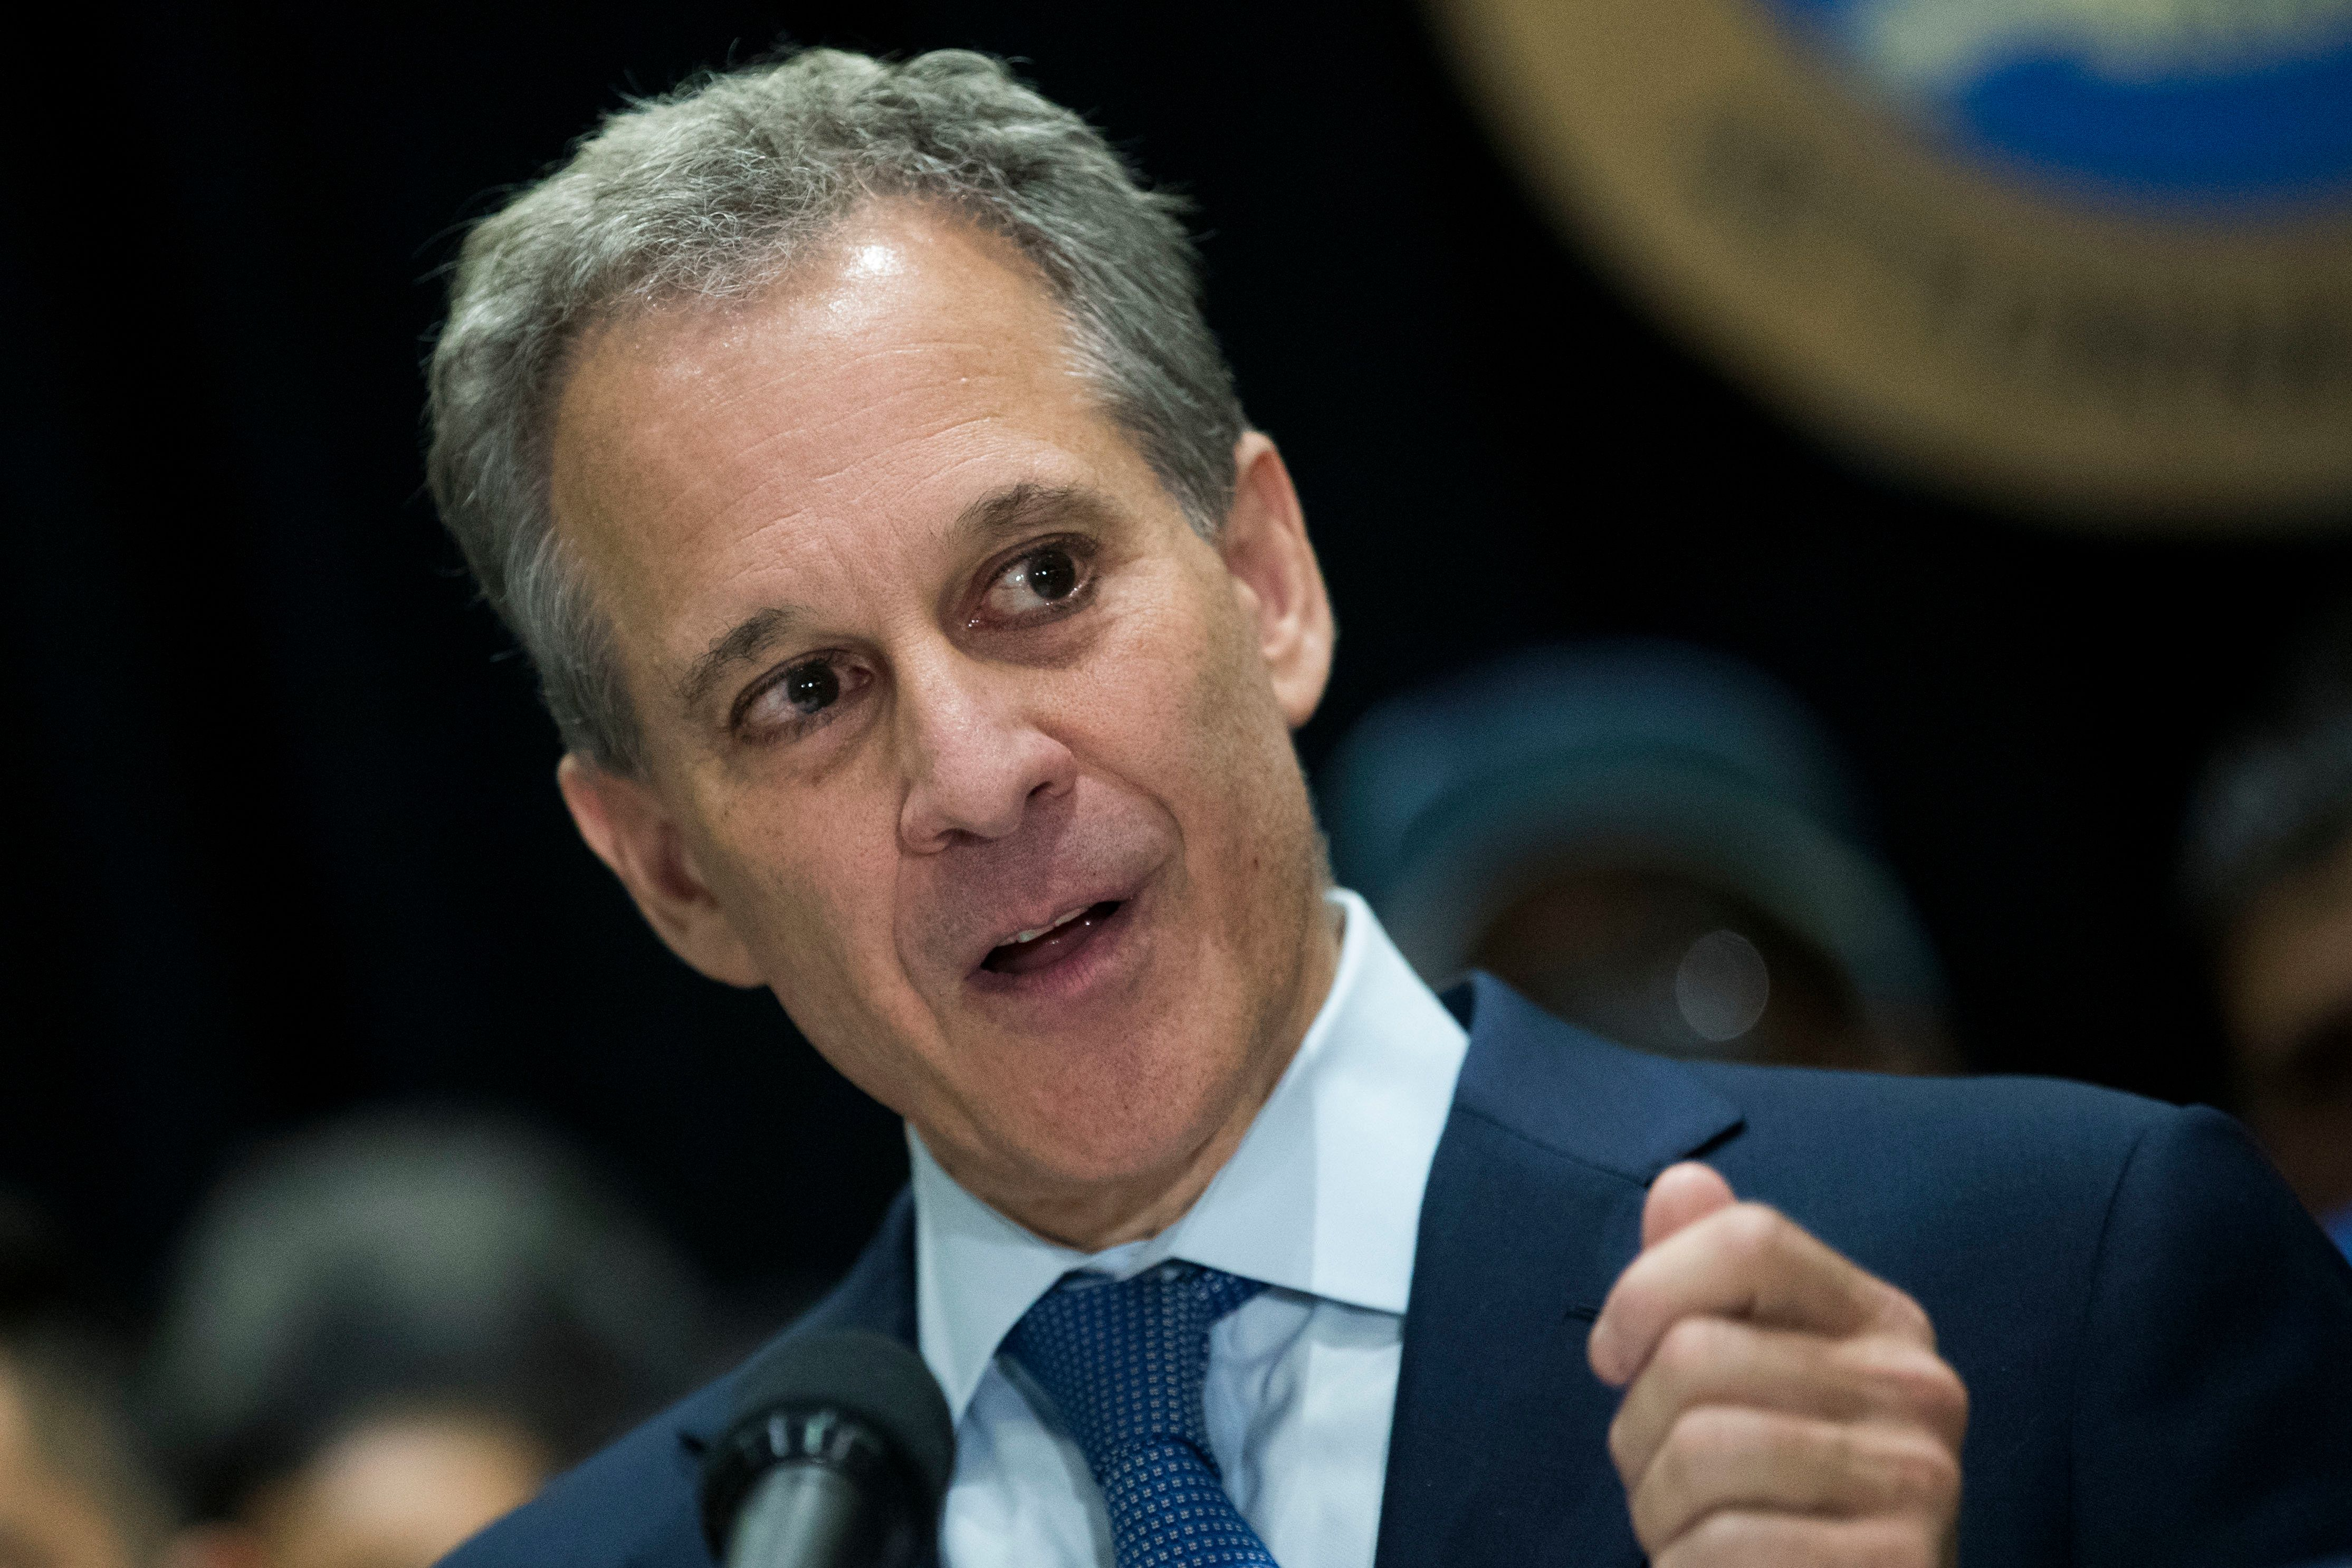 The practice of using campaign funds to cover legal expenses is not illegal, but reform activists say Schneiderman and other